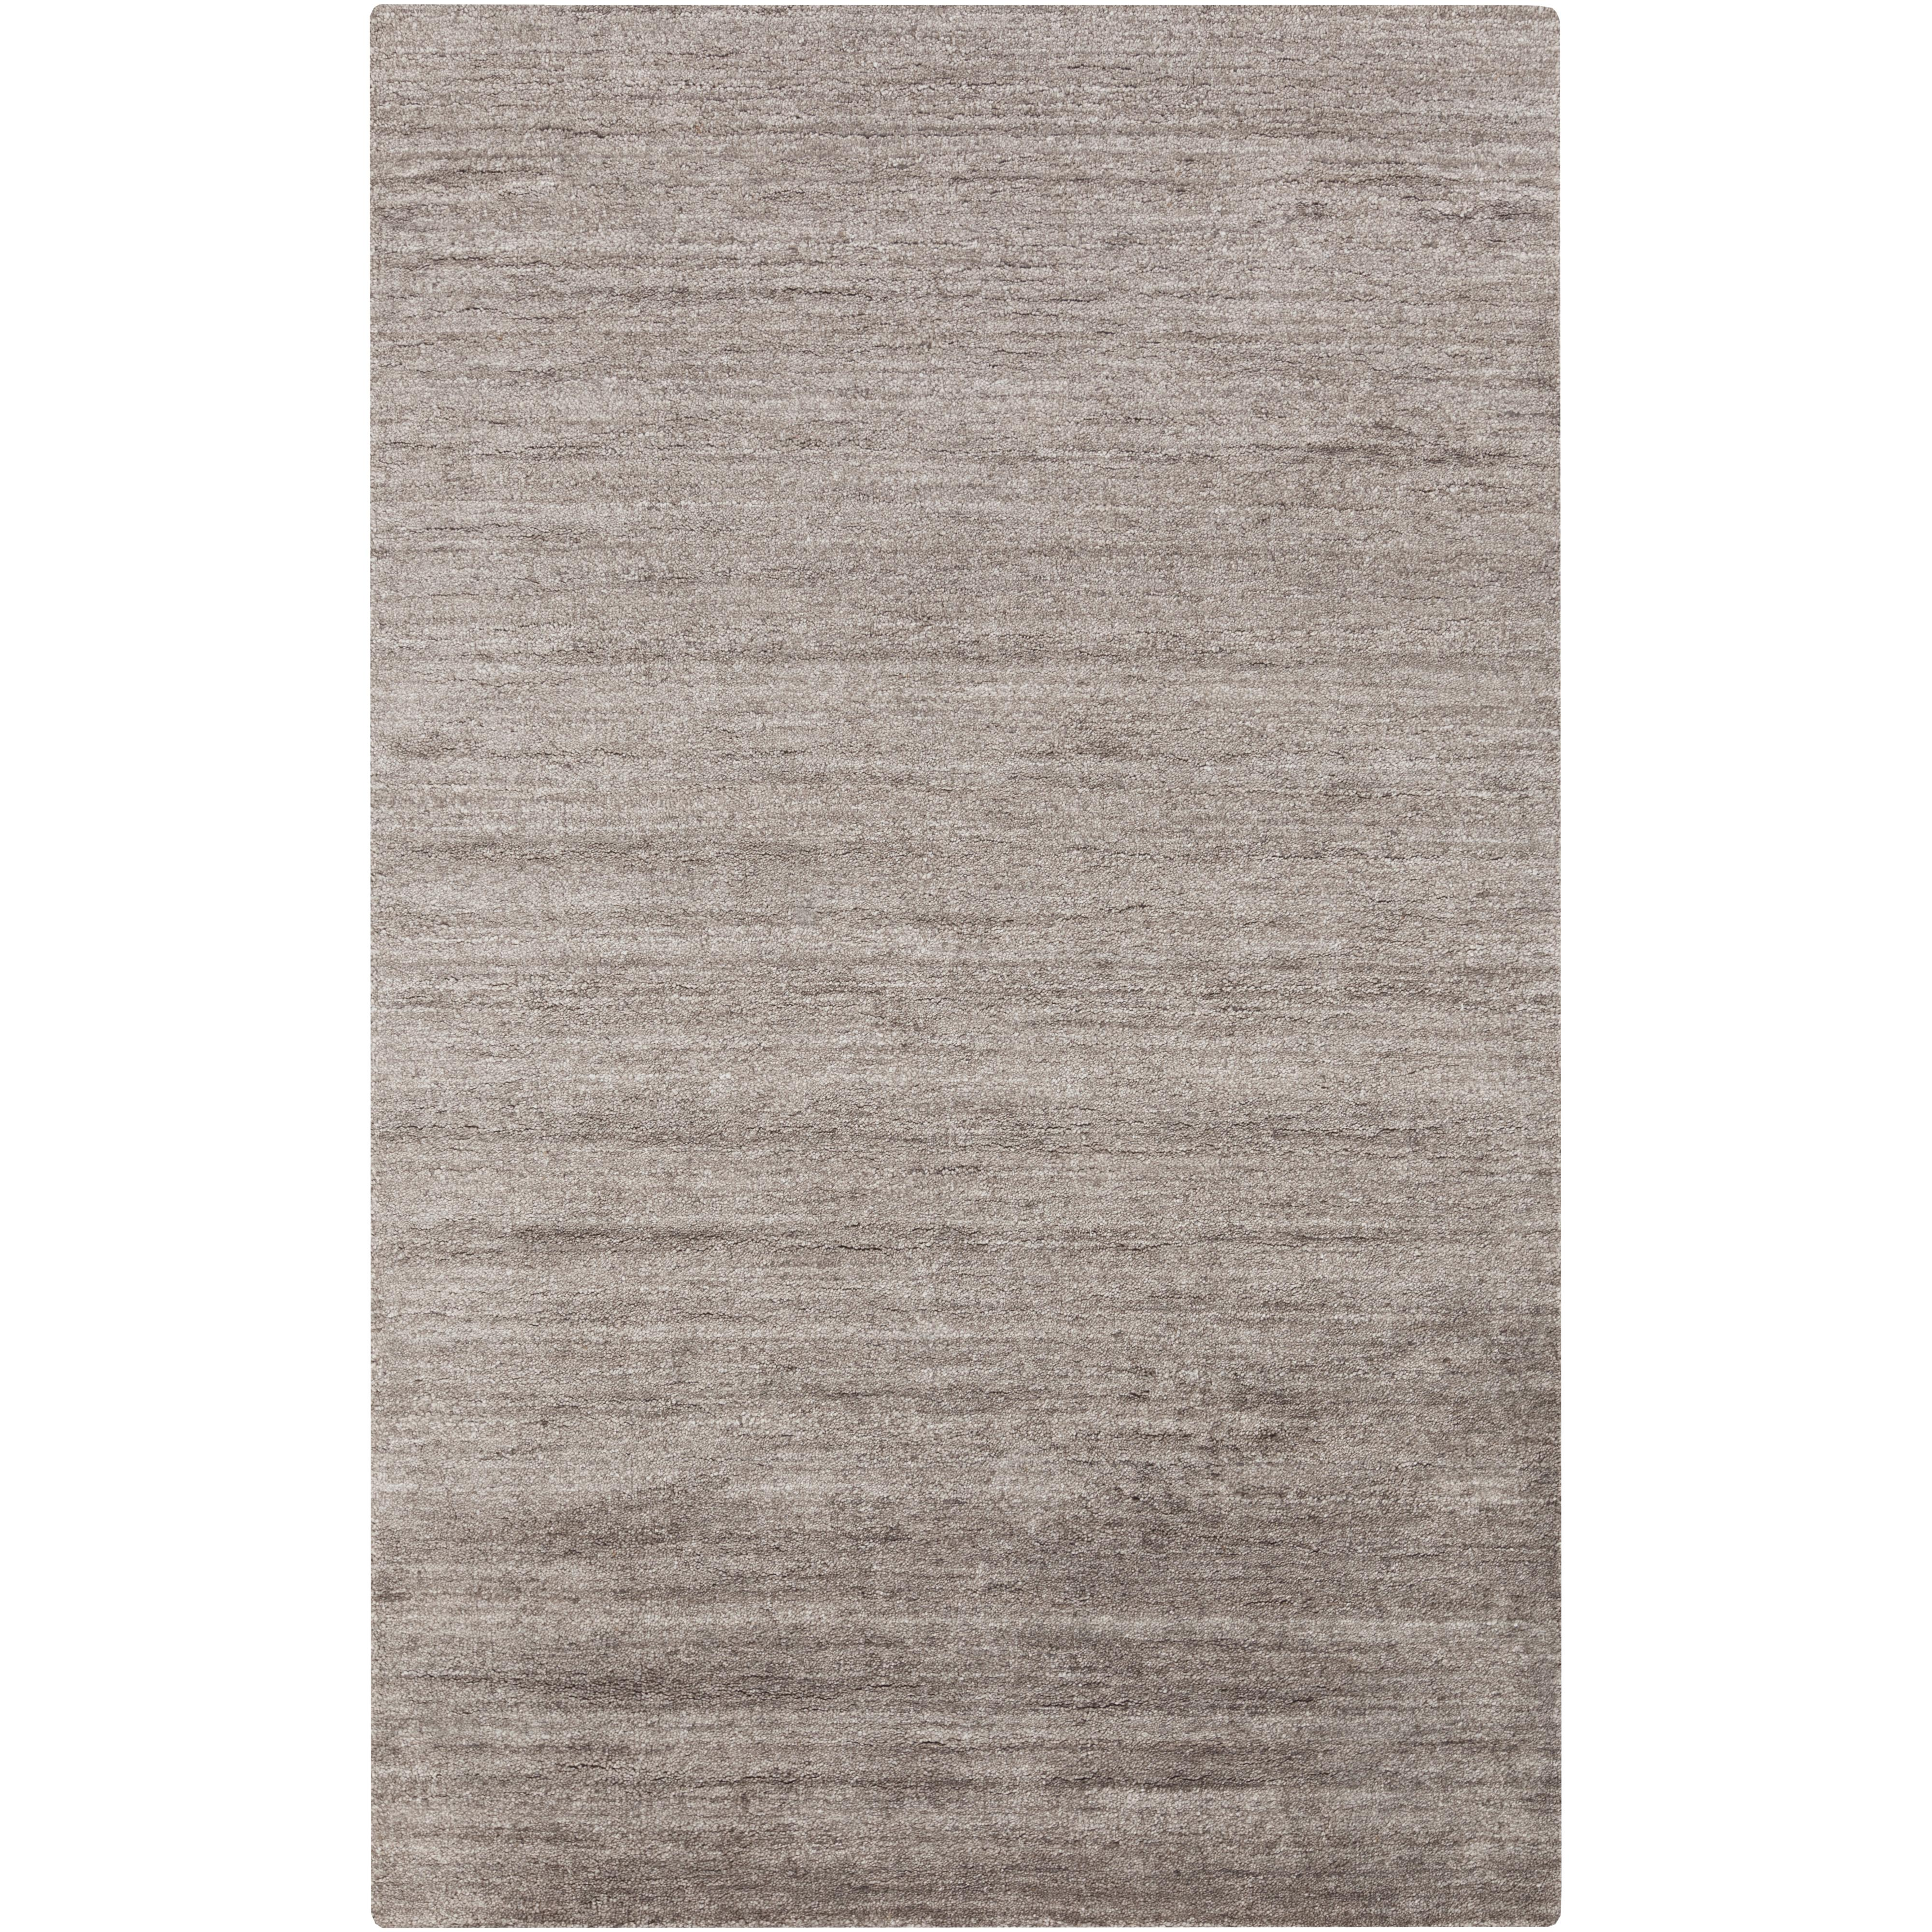 "Surya Rugs Haize 3'6"" x 5'6"" - Item Number: HAZ6008-3656"